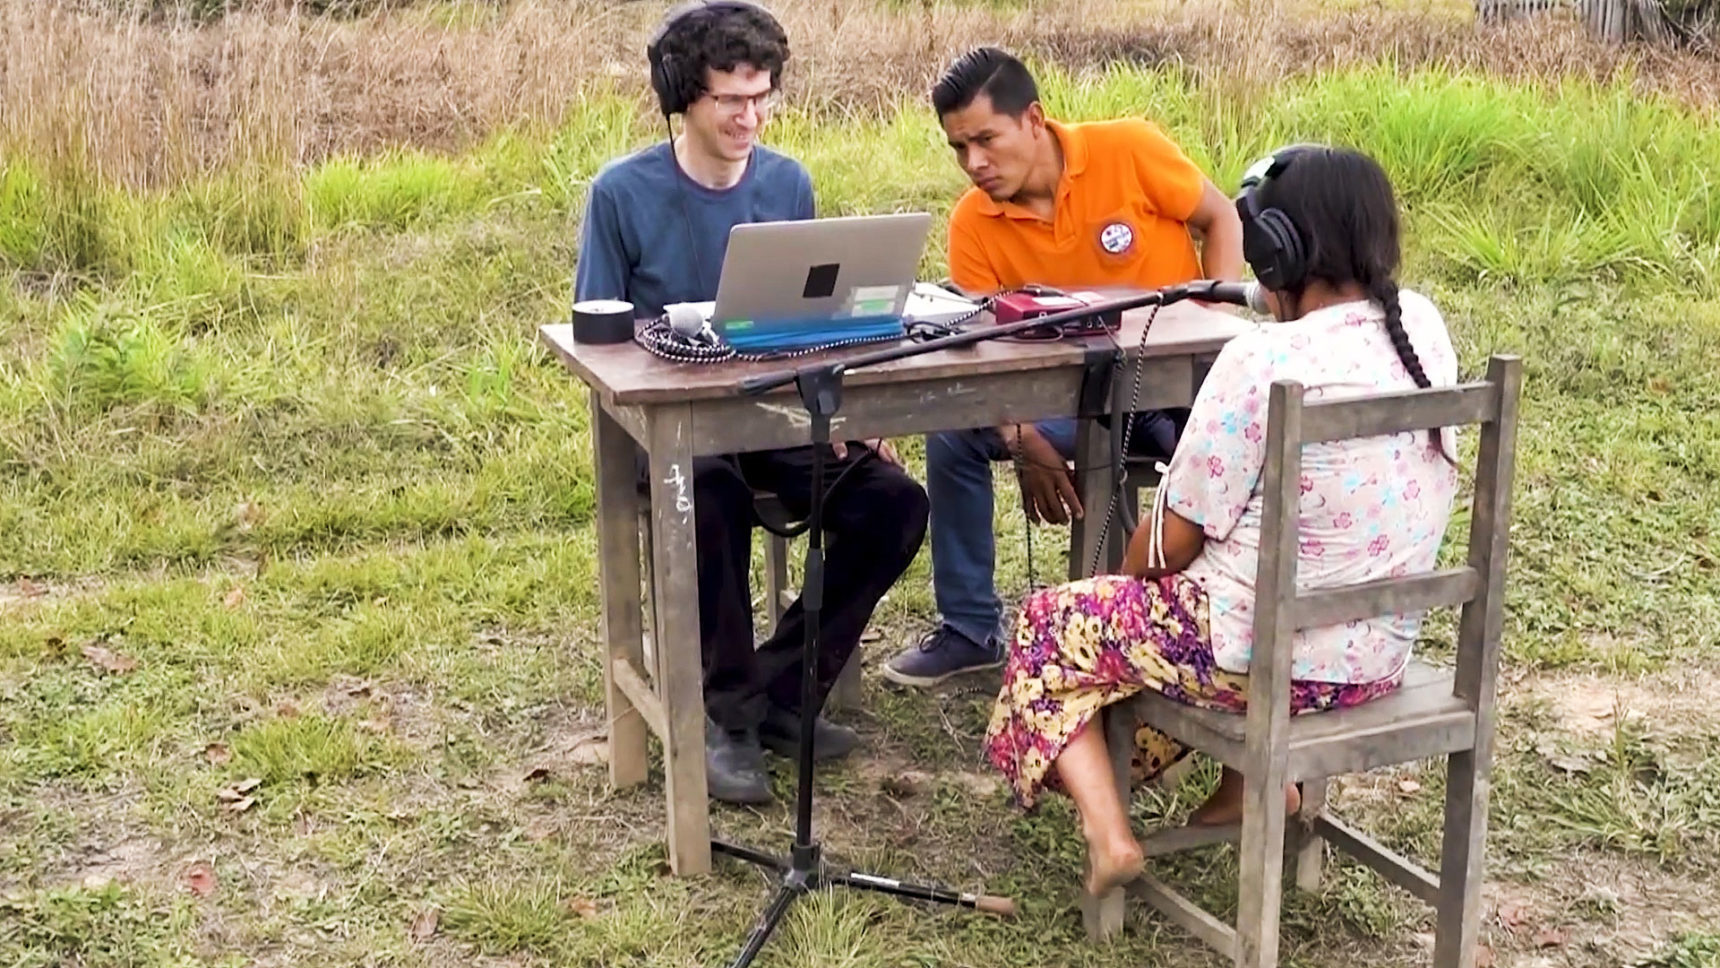 VIDEO: In their experiments, the researchers played pairs of musical tones and asked Tsimané volunteers to sing back the notes they heard. Sometimes this task required the volunteers to transpose the notes that they heard into an octave within their vocal range.